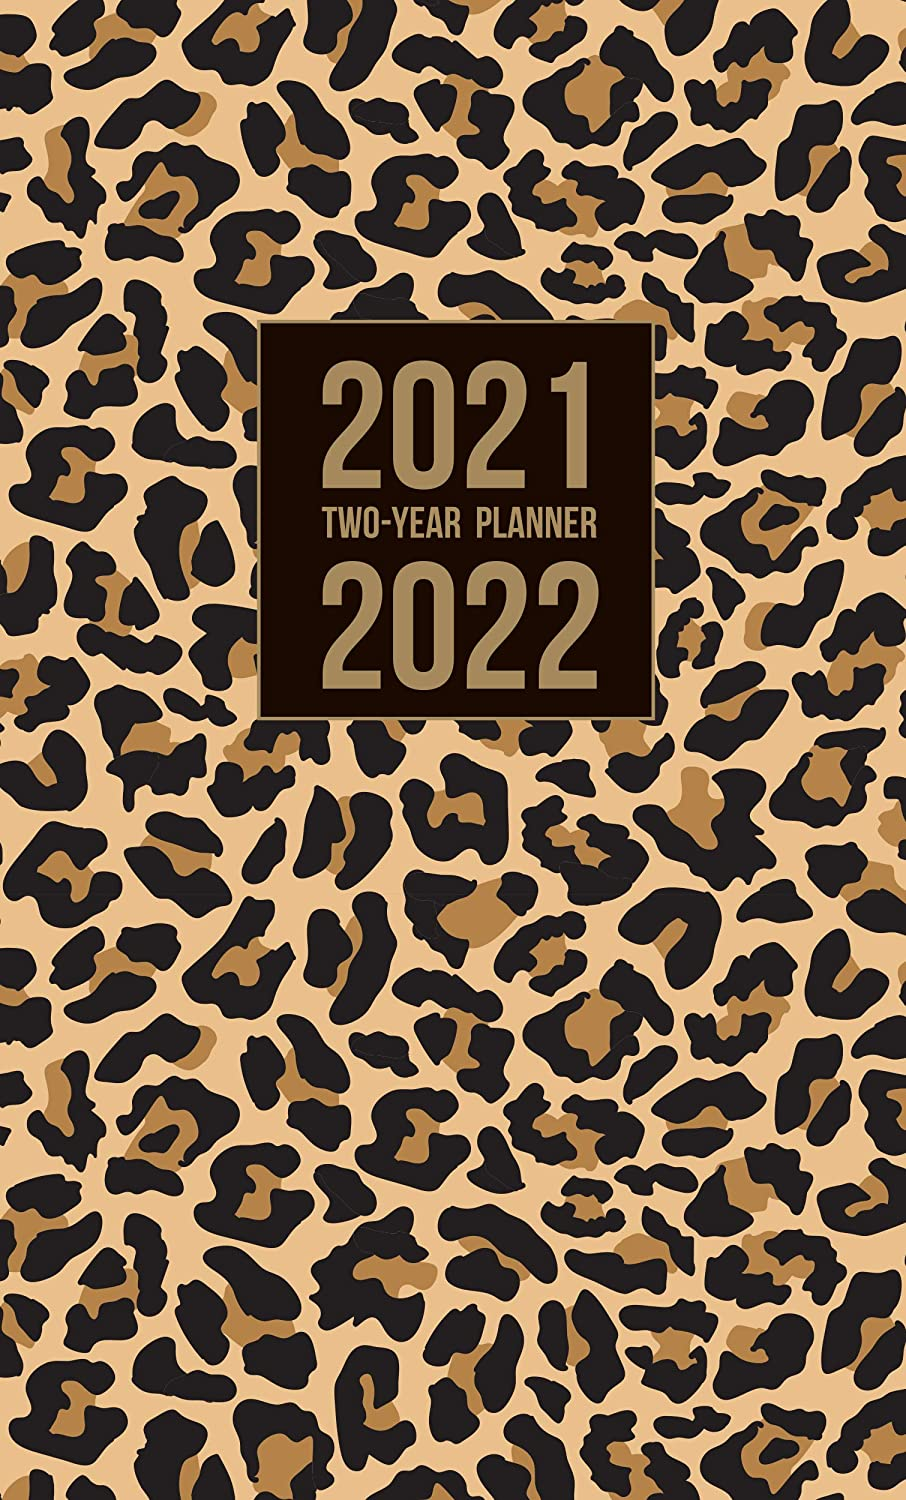 Graphique 2021 Fashion 2 Year Planner — 29-Month Planner in 4 Languages, Includes Notes, Reference Pages, Public and Culturally Significant Holidays, 3.75